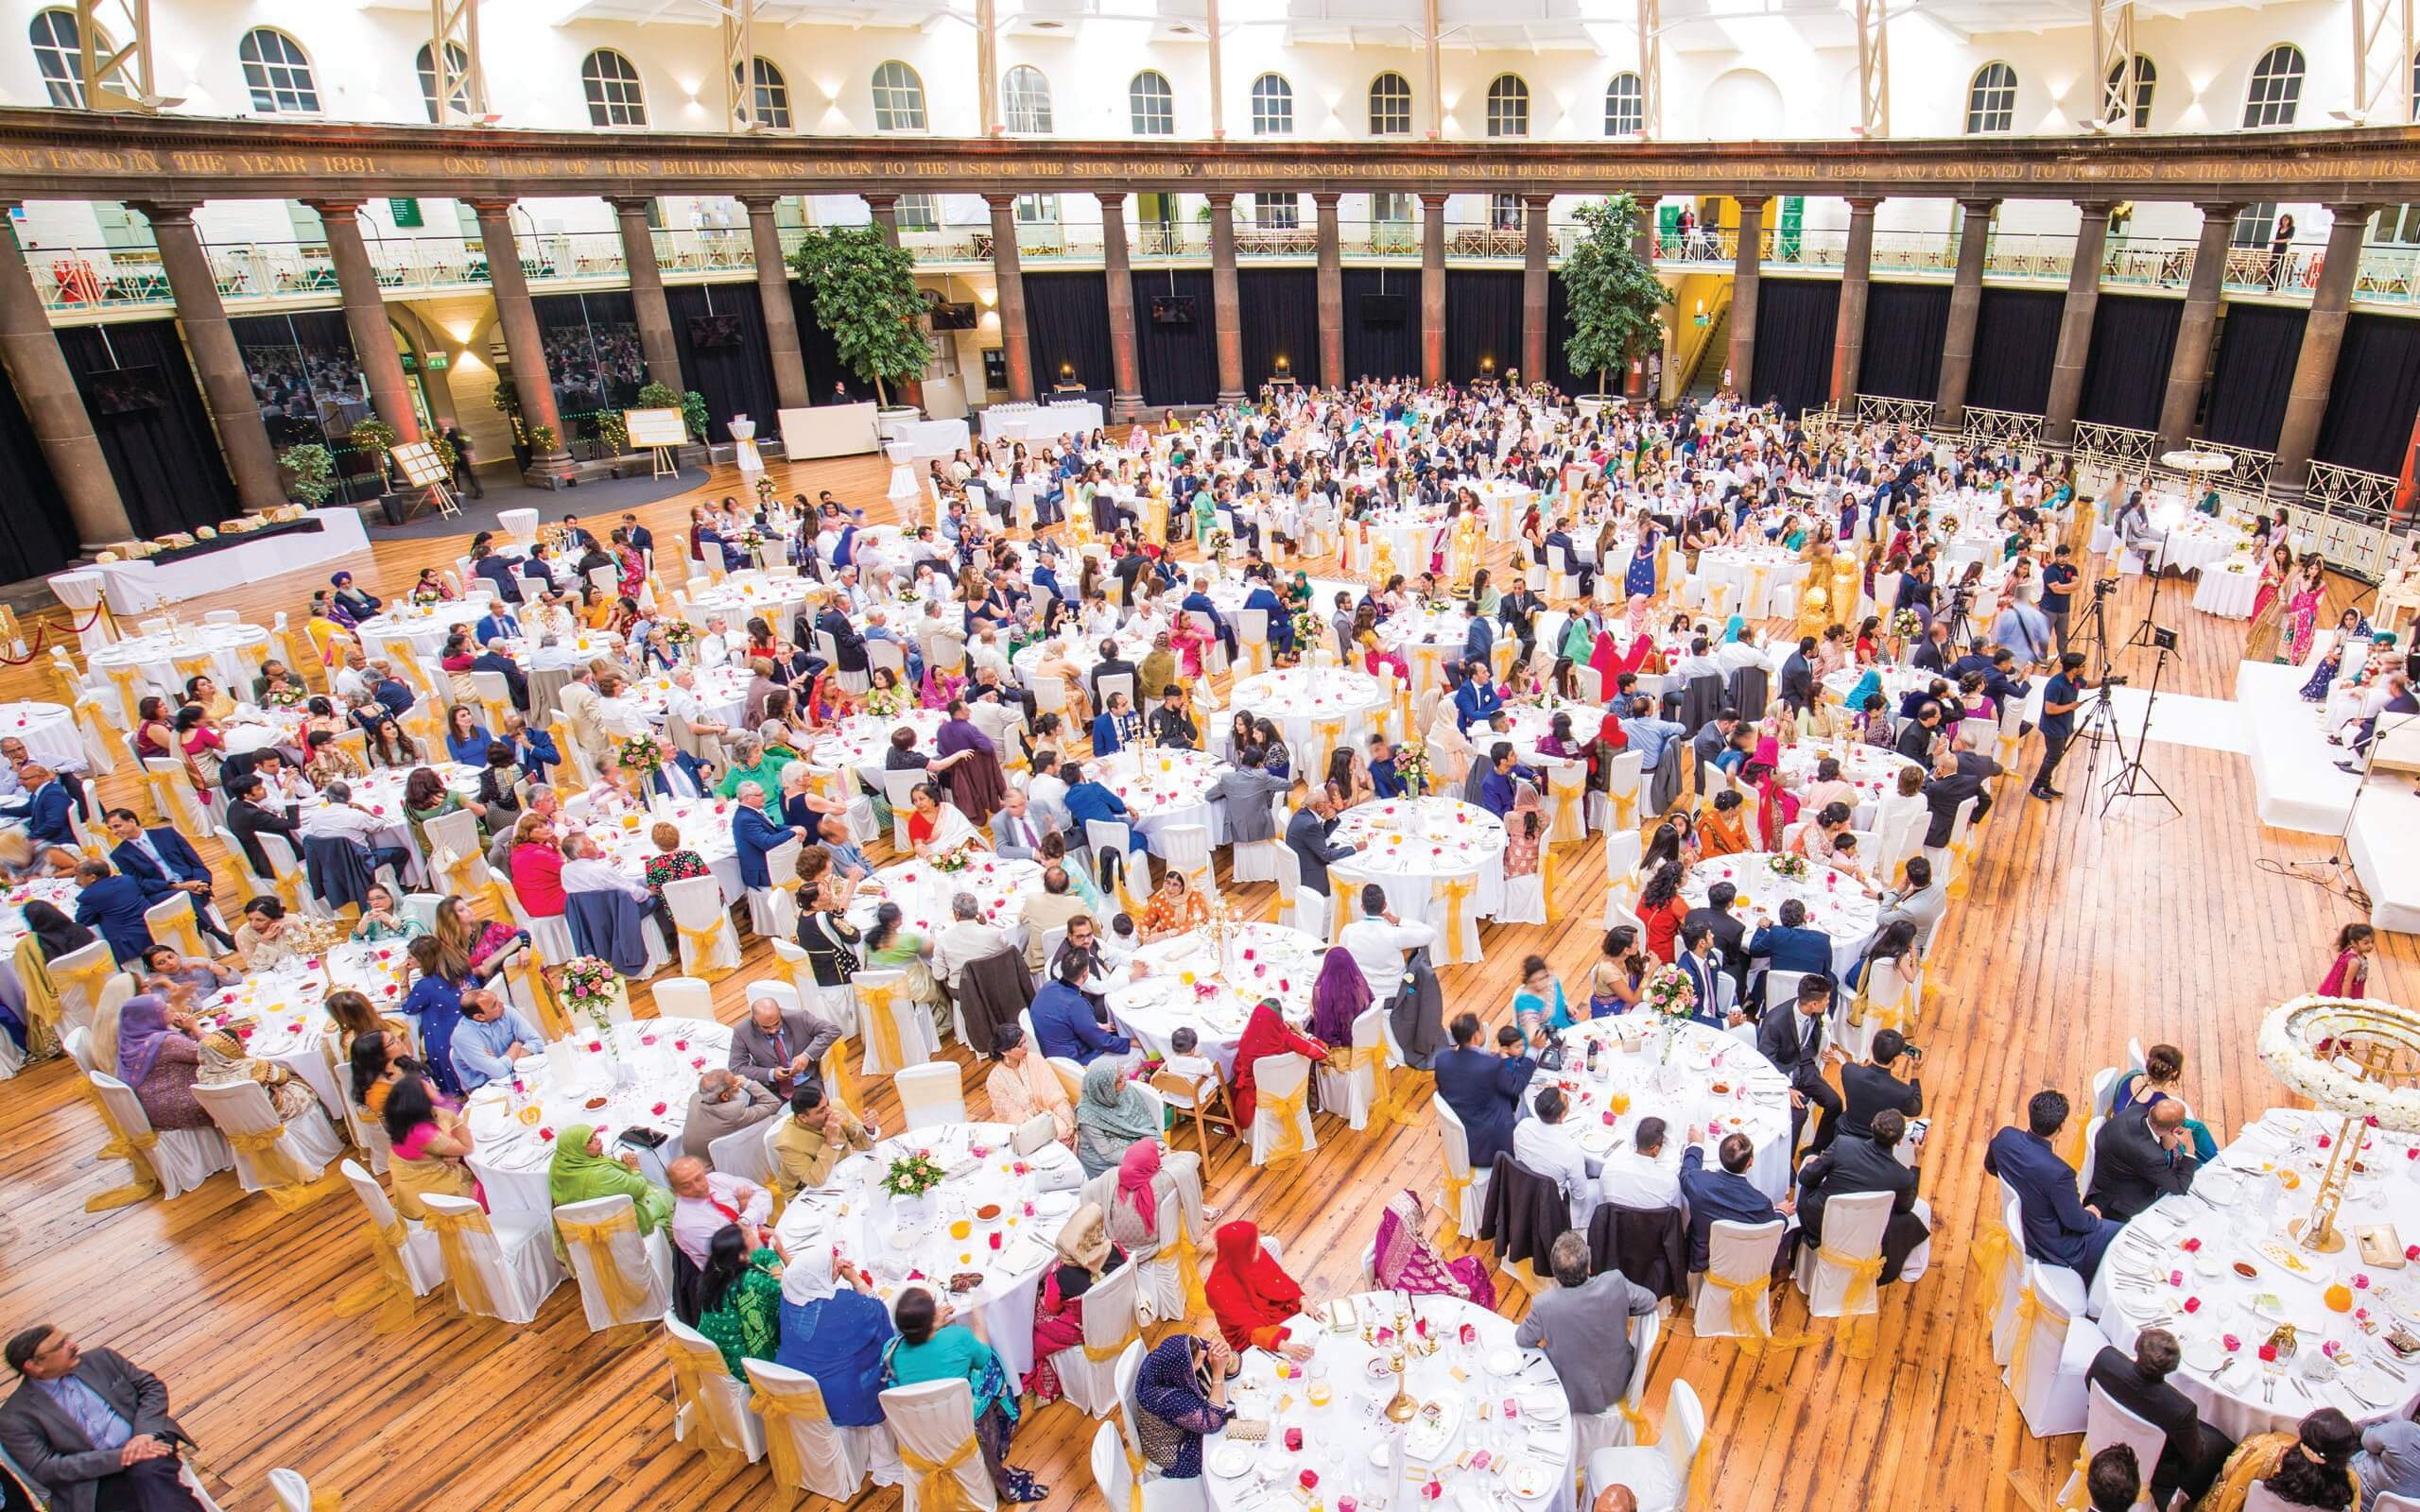 Large hospitality and catering event with busy tables of diners in buxton dome